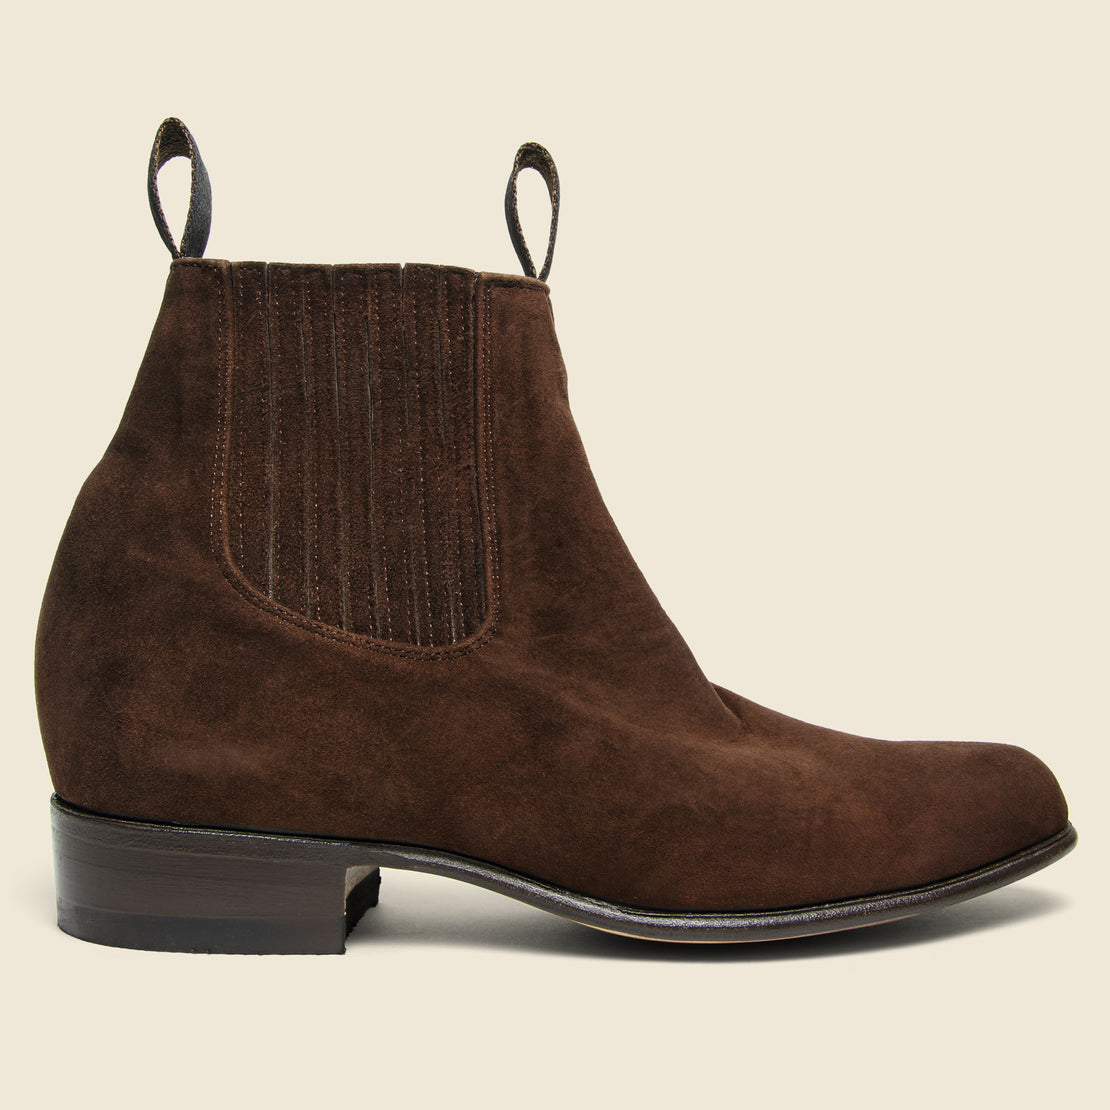 Chamula Botin Charro Chelsea Boot - Brown Suede